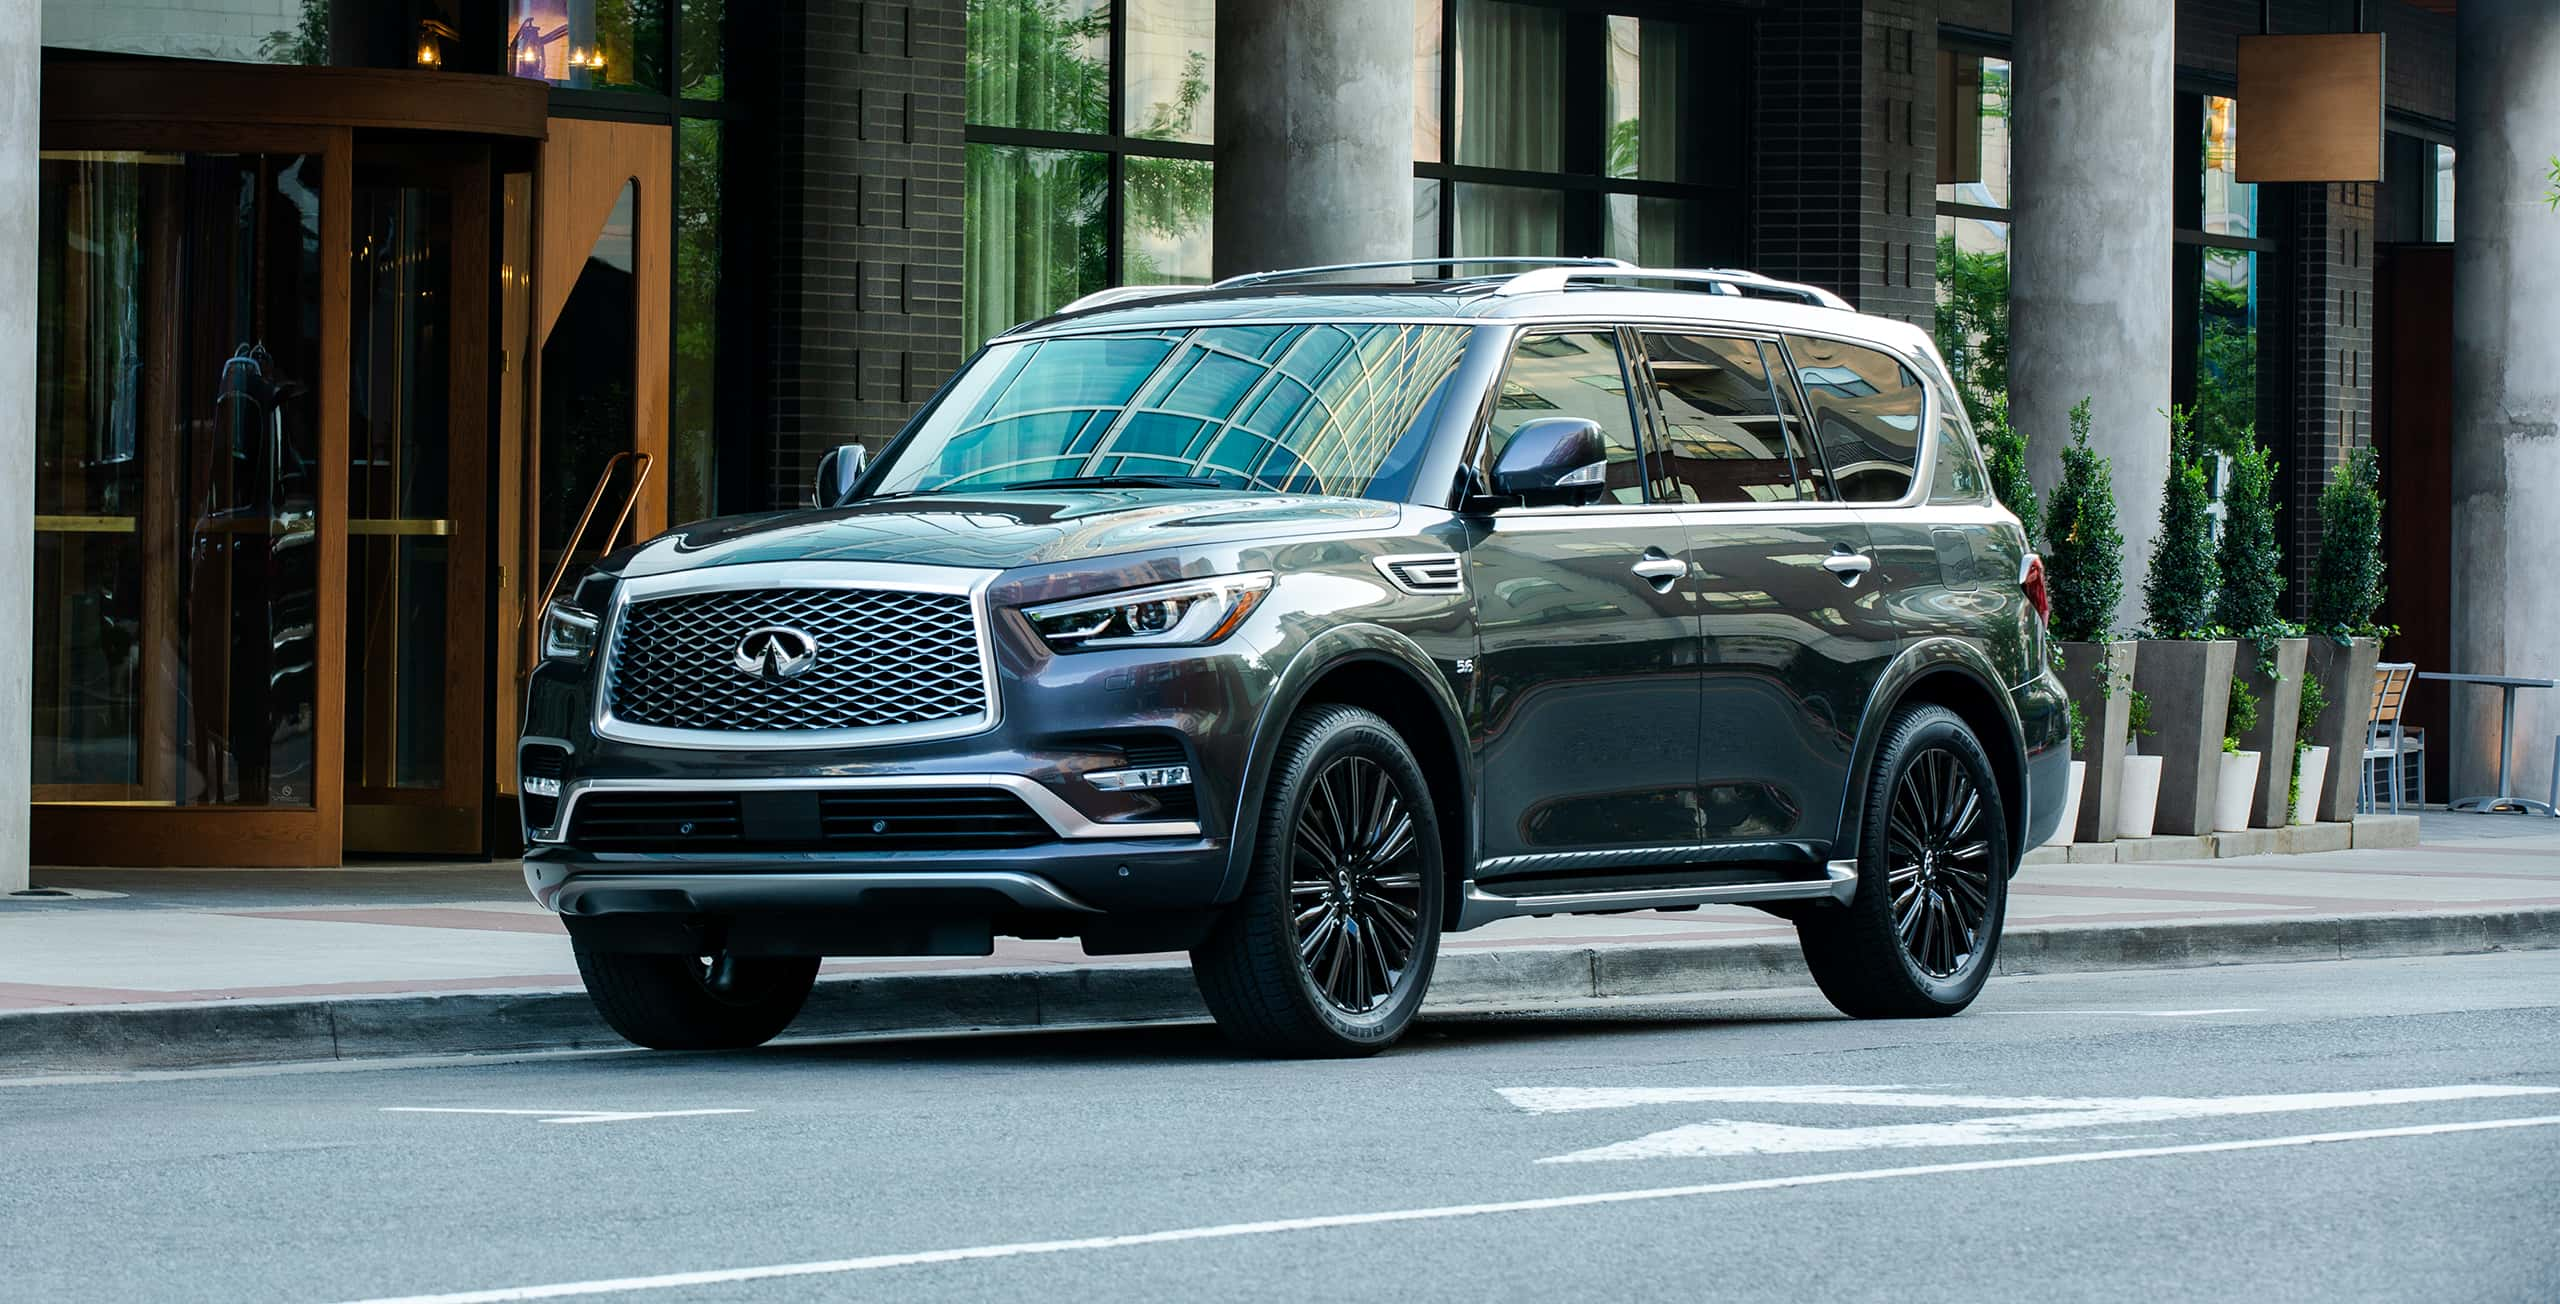 53 A 2019 Infiniti Qx80 Suv Ratings